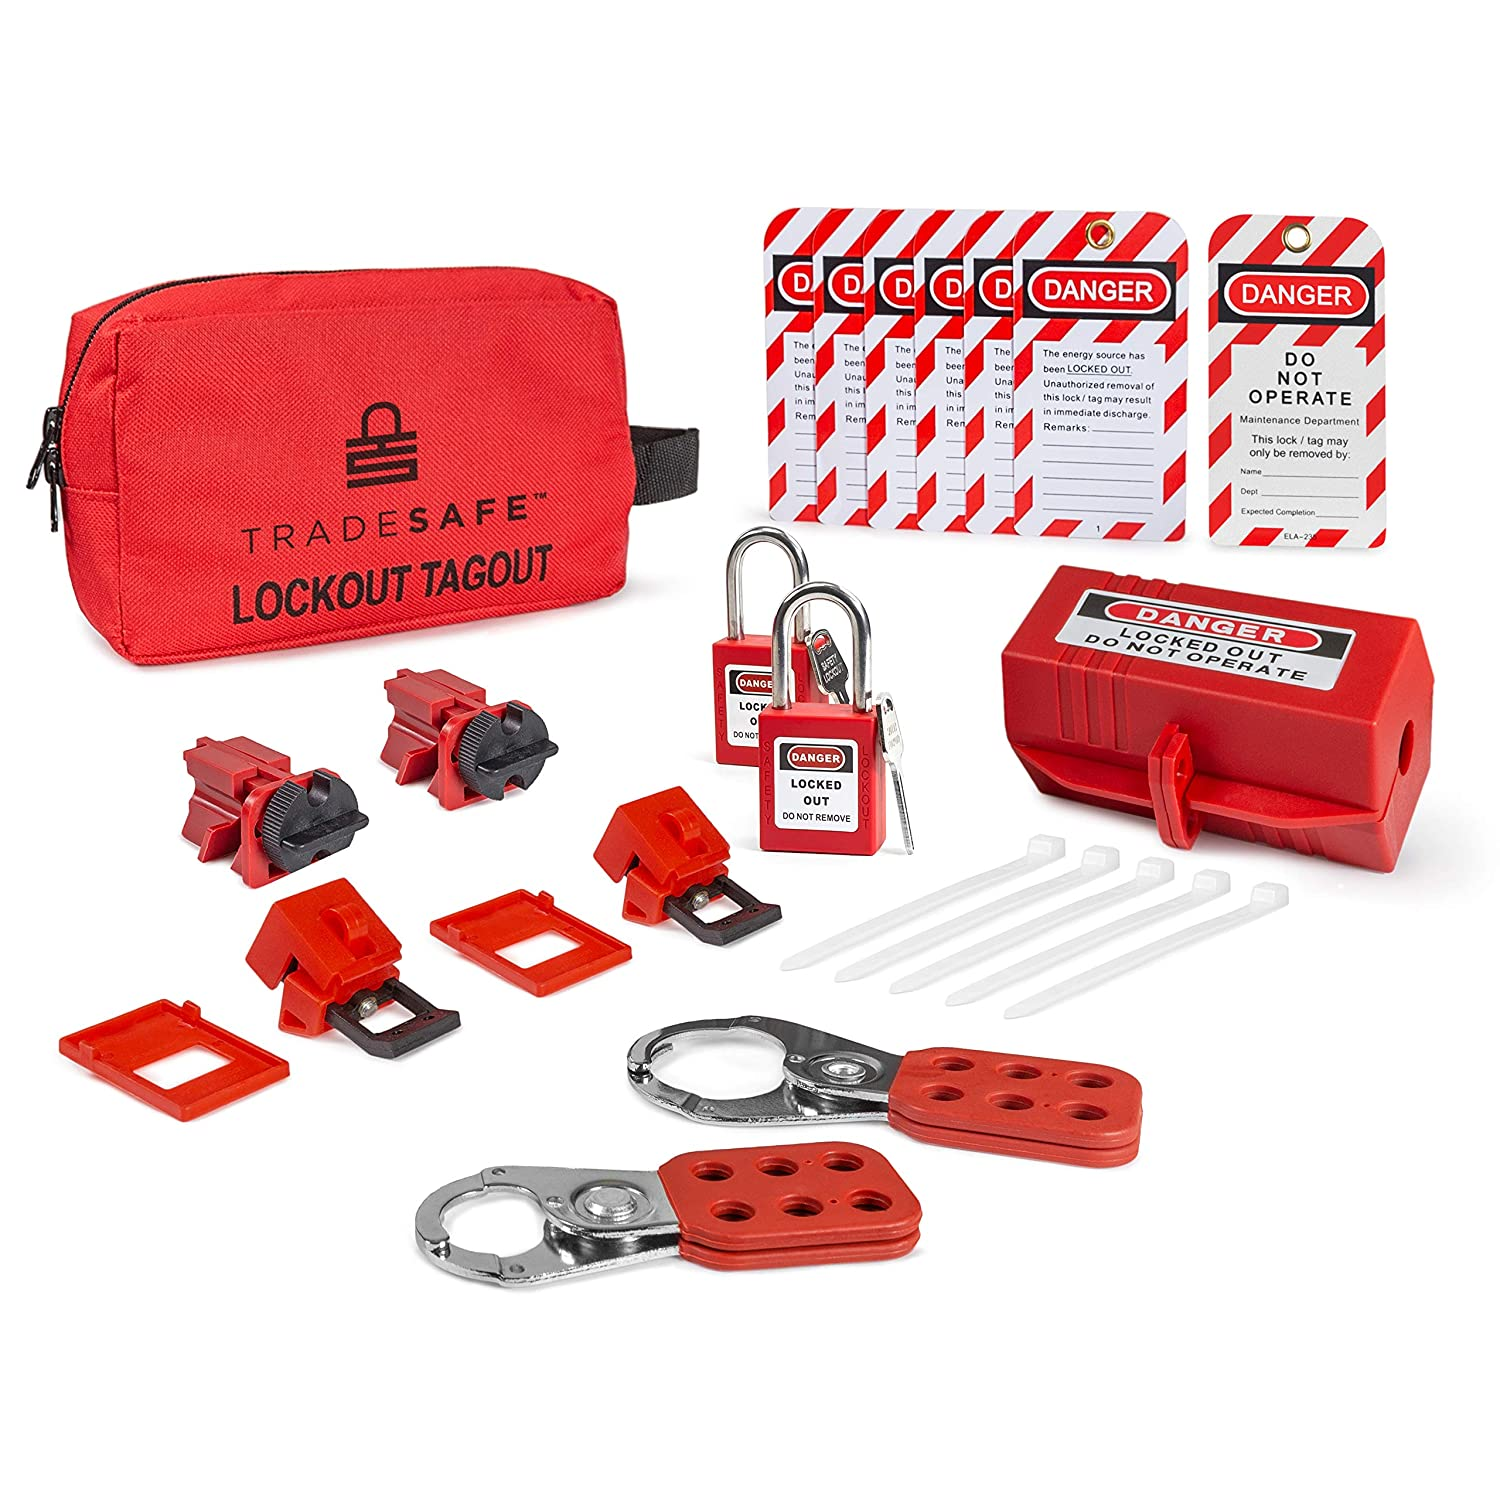 TRADESAFE Electrical Lockout Tagout Kit - Hasps, Clamp on and Universal Multipole Circuit Breaker Lockouts, LOTO Tags, Plug Lockout, Safety Padlocks Set | OSHA Compliance for Lock Out Tag Out Stations